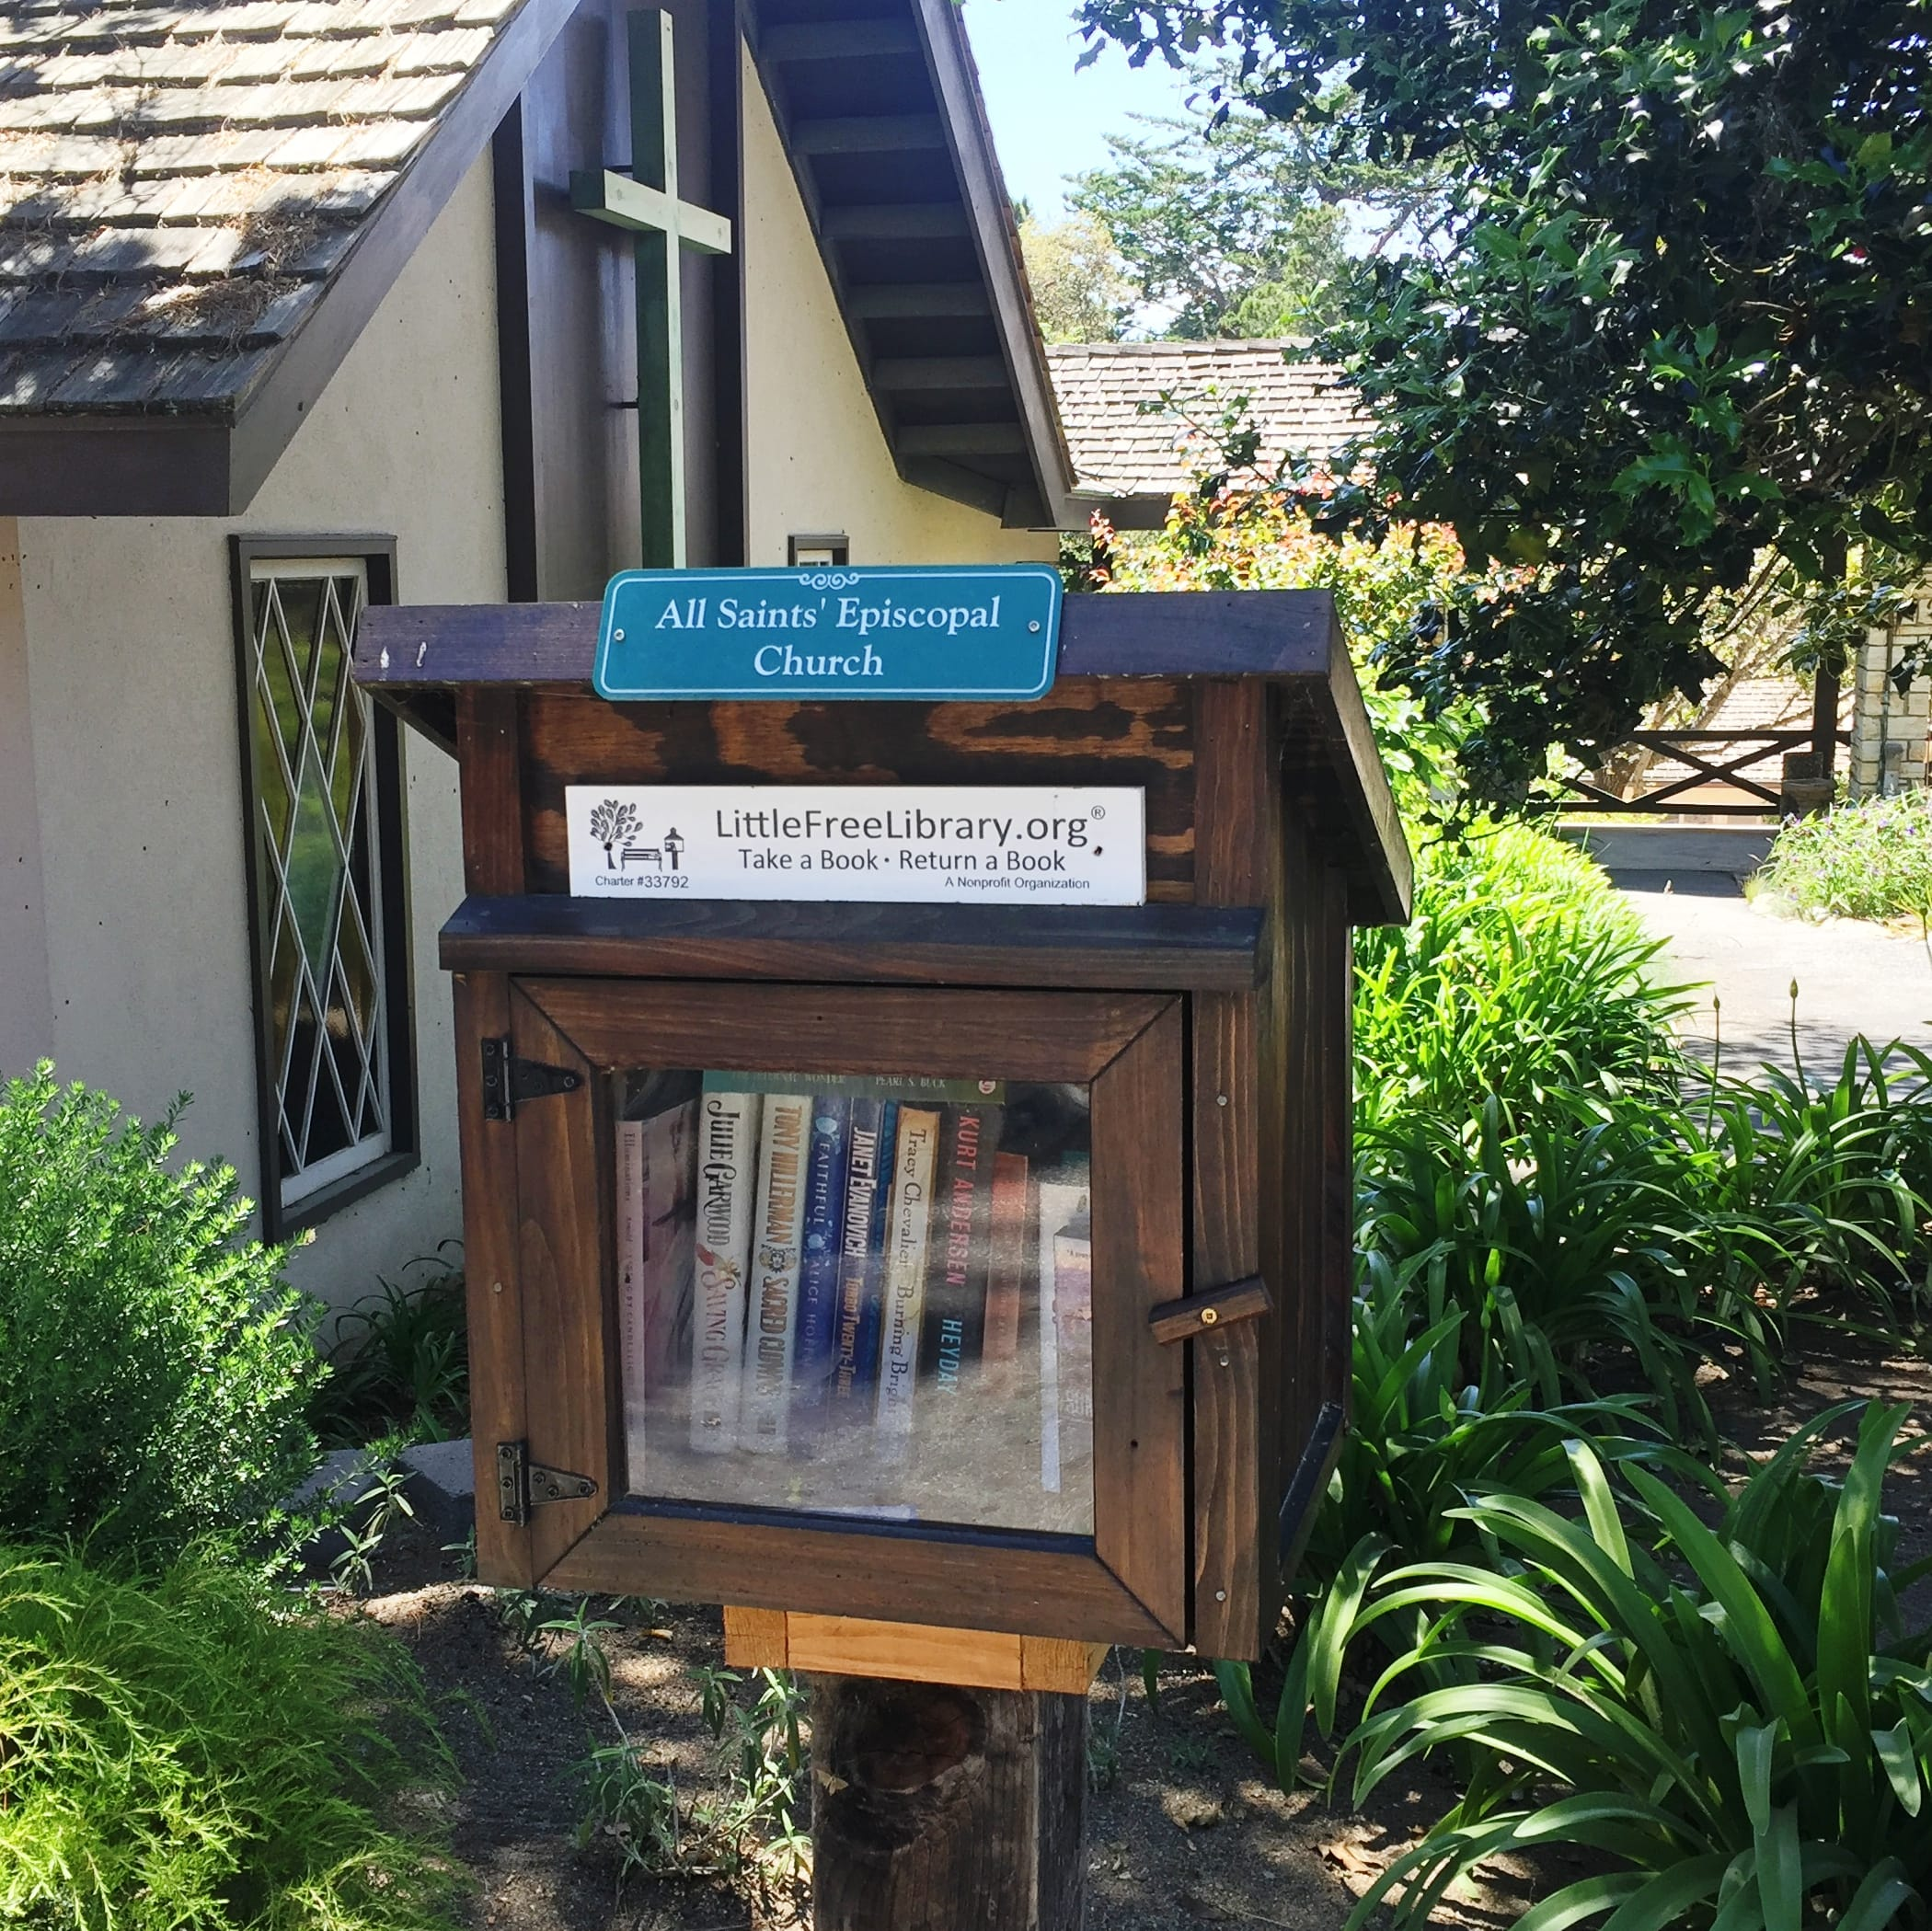 Outdoor library stand at All Saints' church in Carmel. California